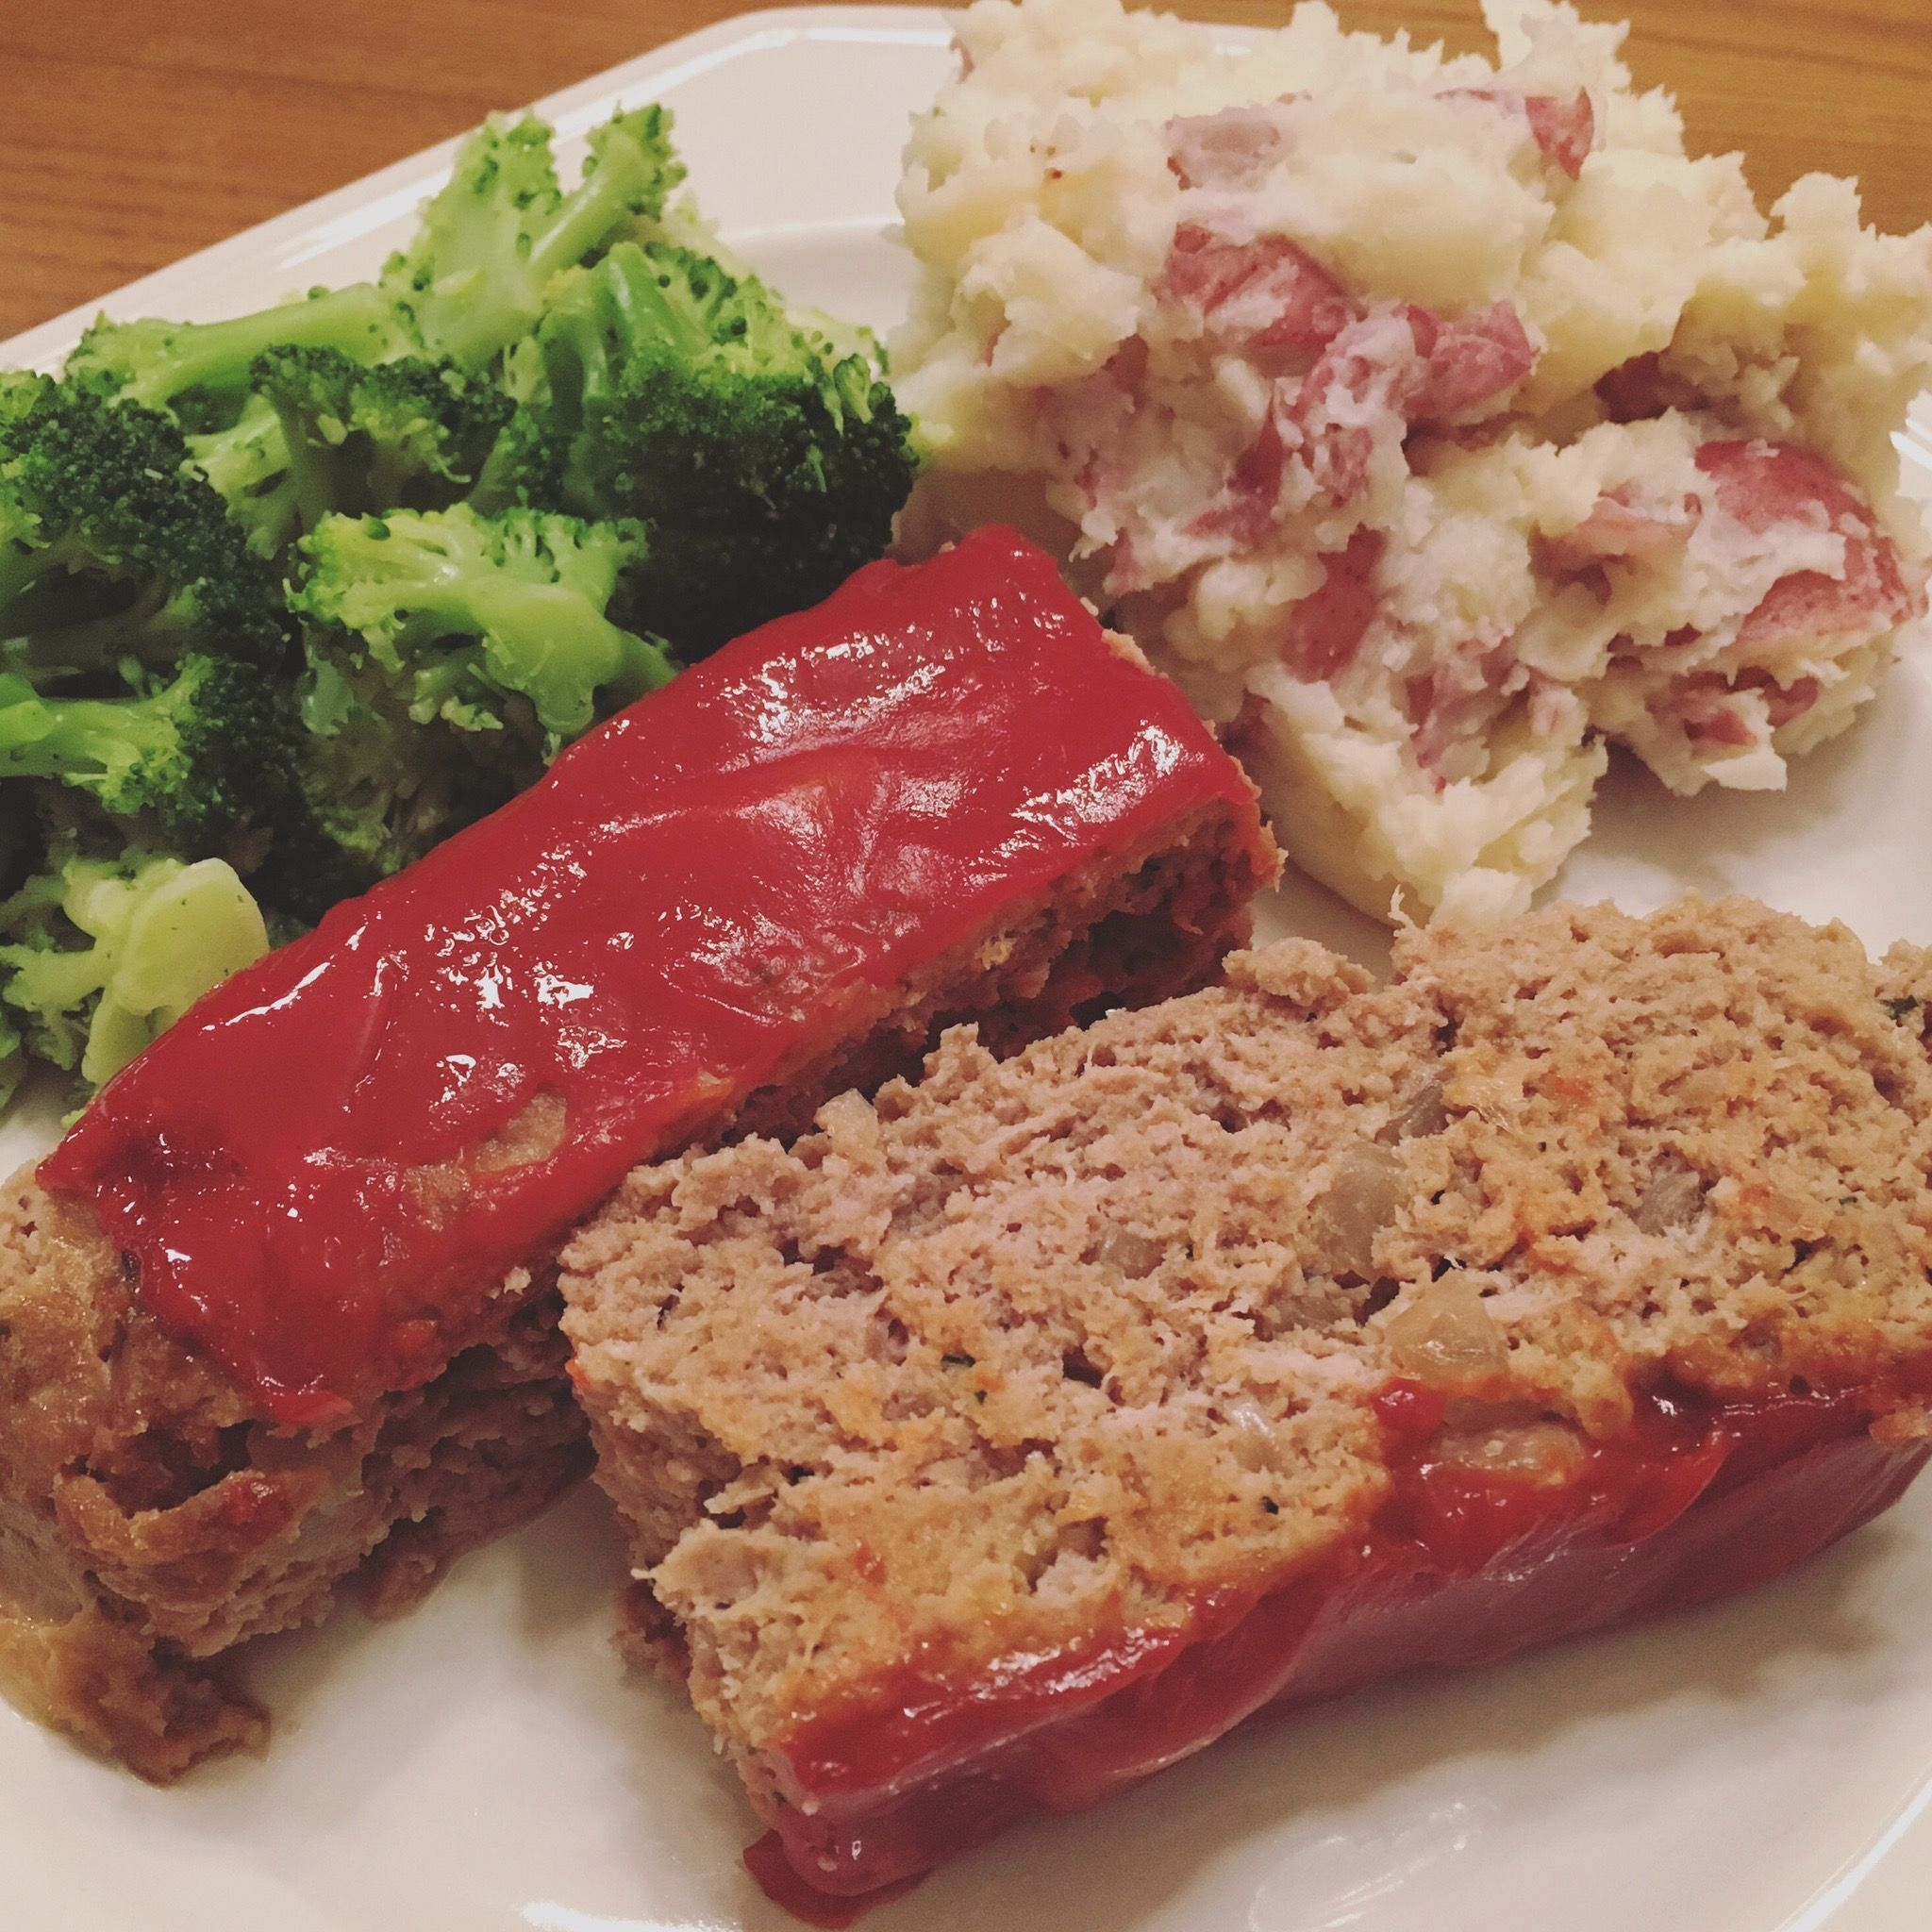 Barefoot Contessa Turkey Meatloaf Recipe On Madefromscratchdaily Channeling My Inner Ina Garten This One